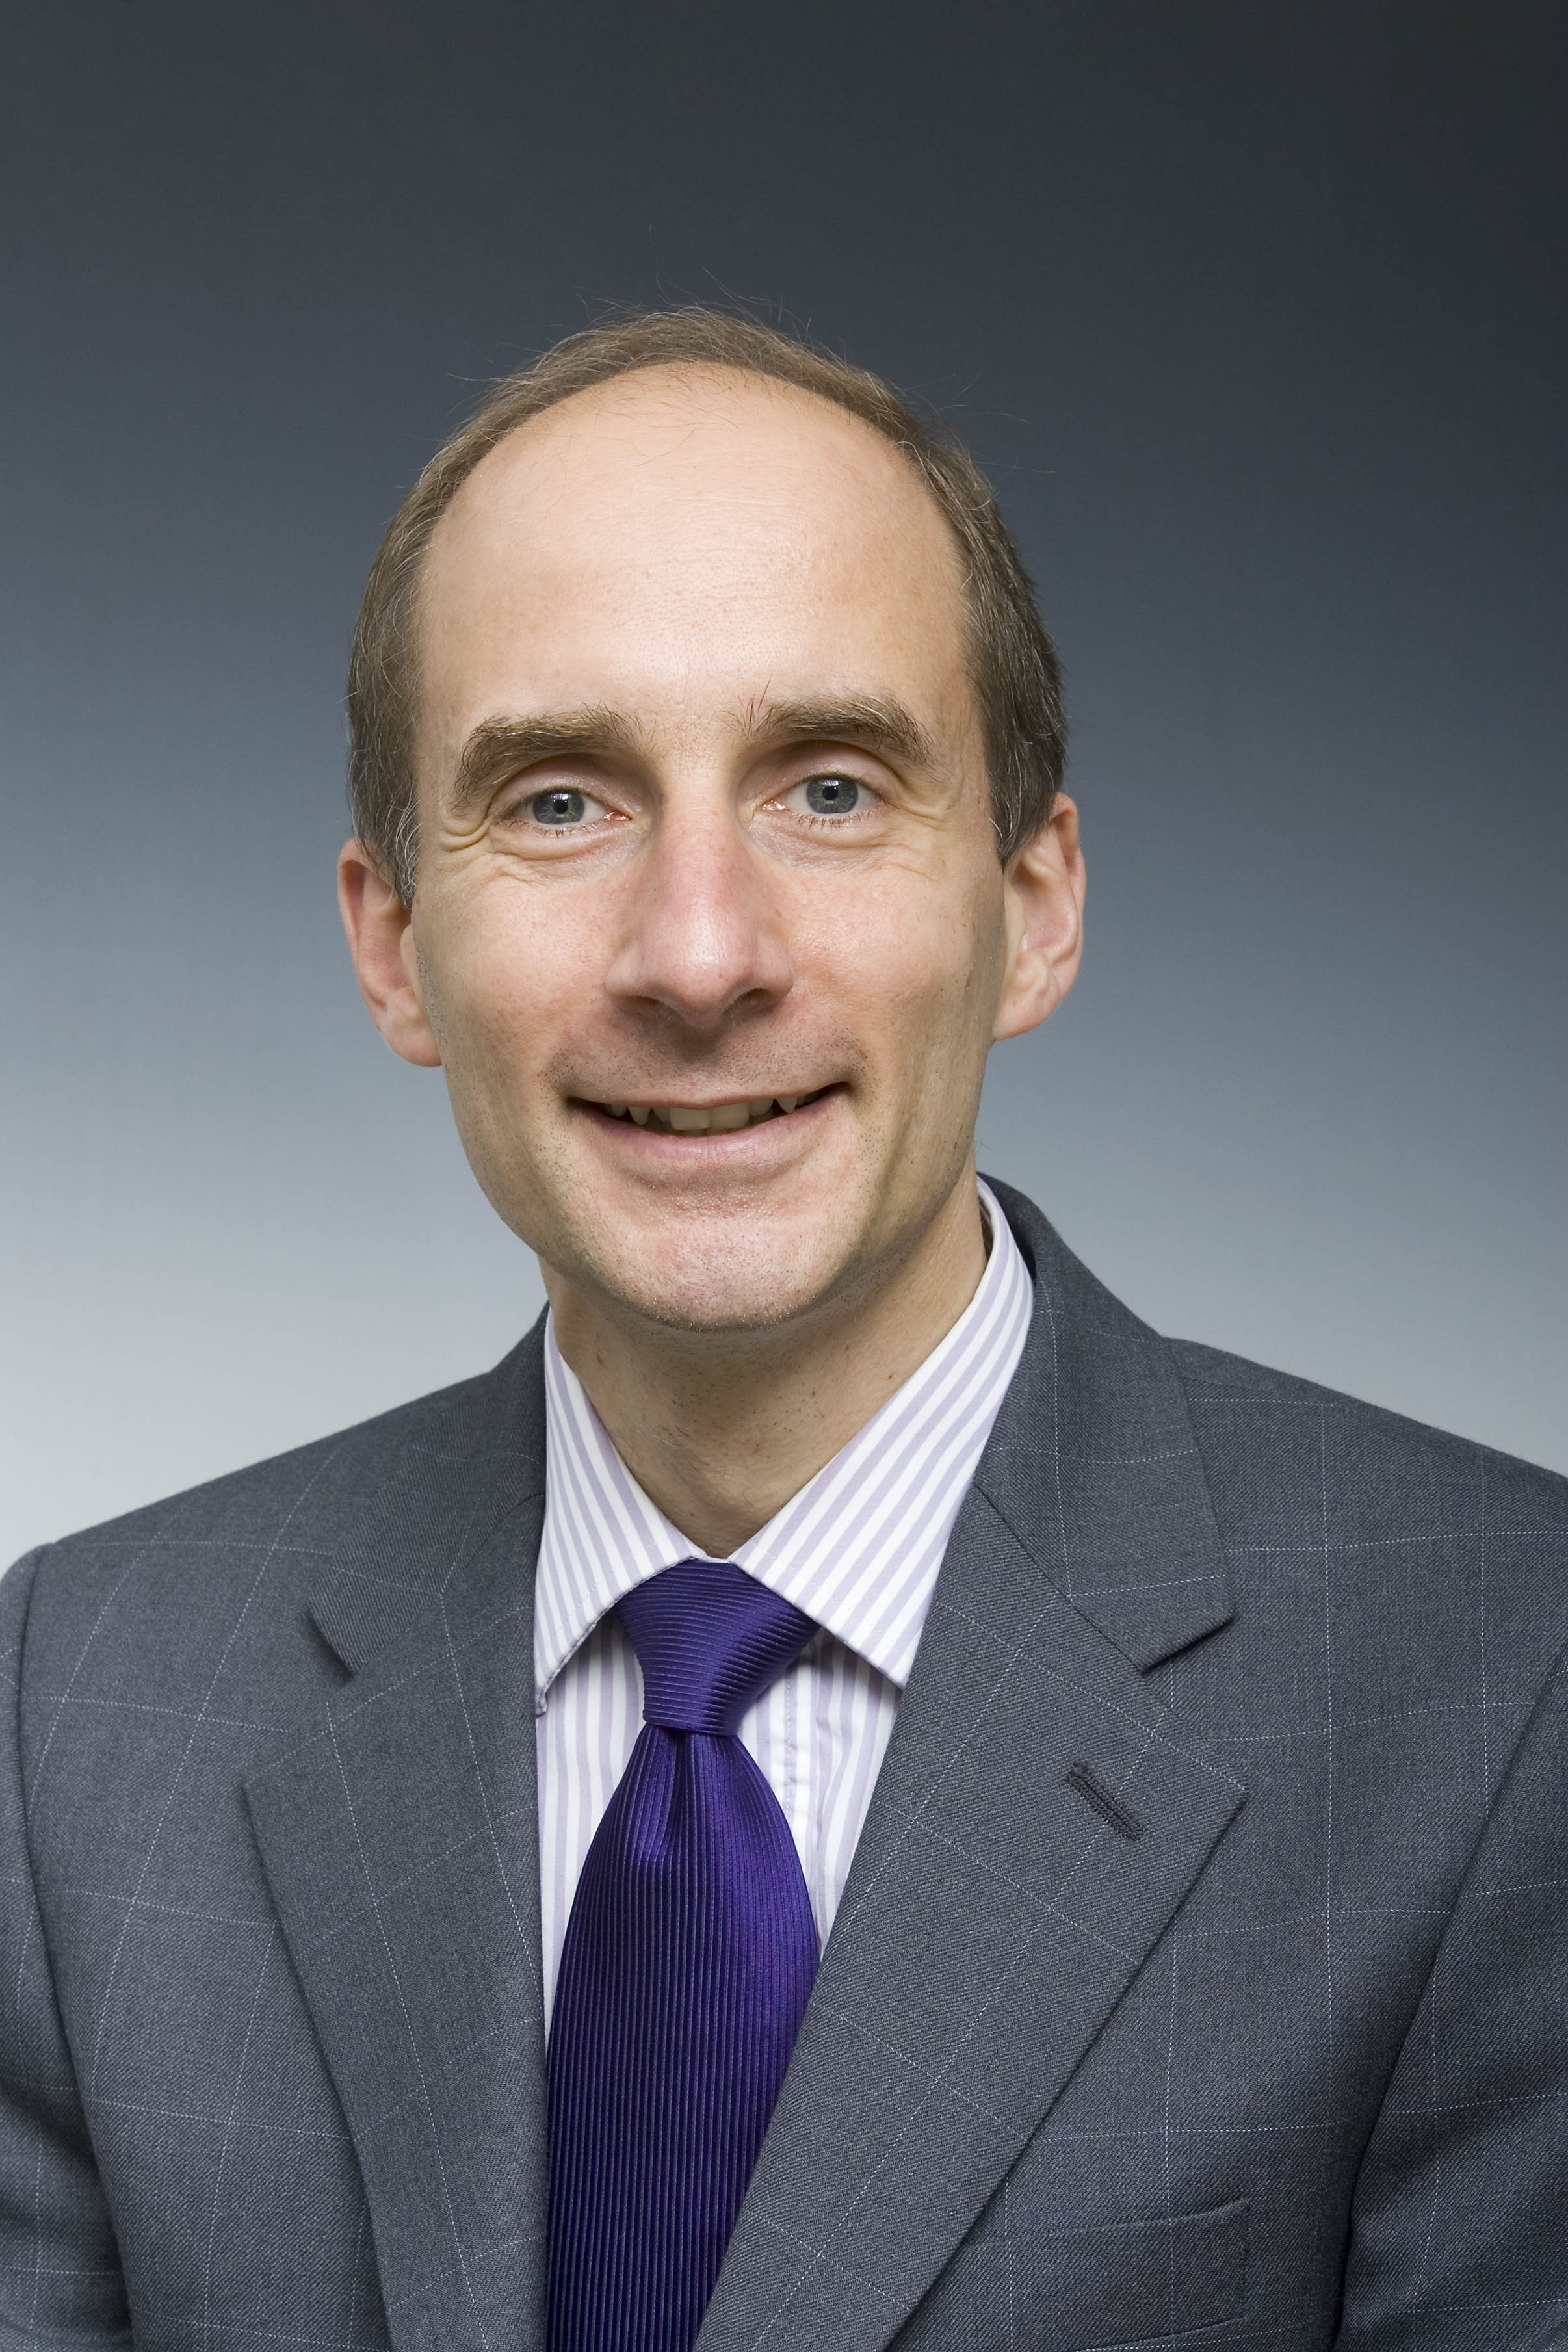 https://fiftyshadesofgay.co.in/UK/Another Gay Has Arrived! Andrew Adonis is Out of The Closet